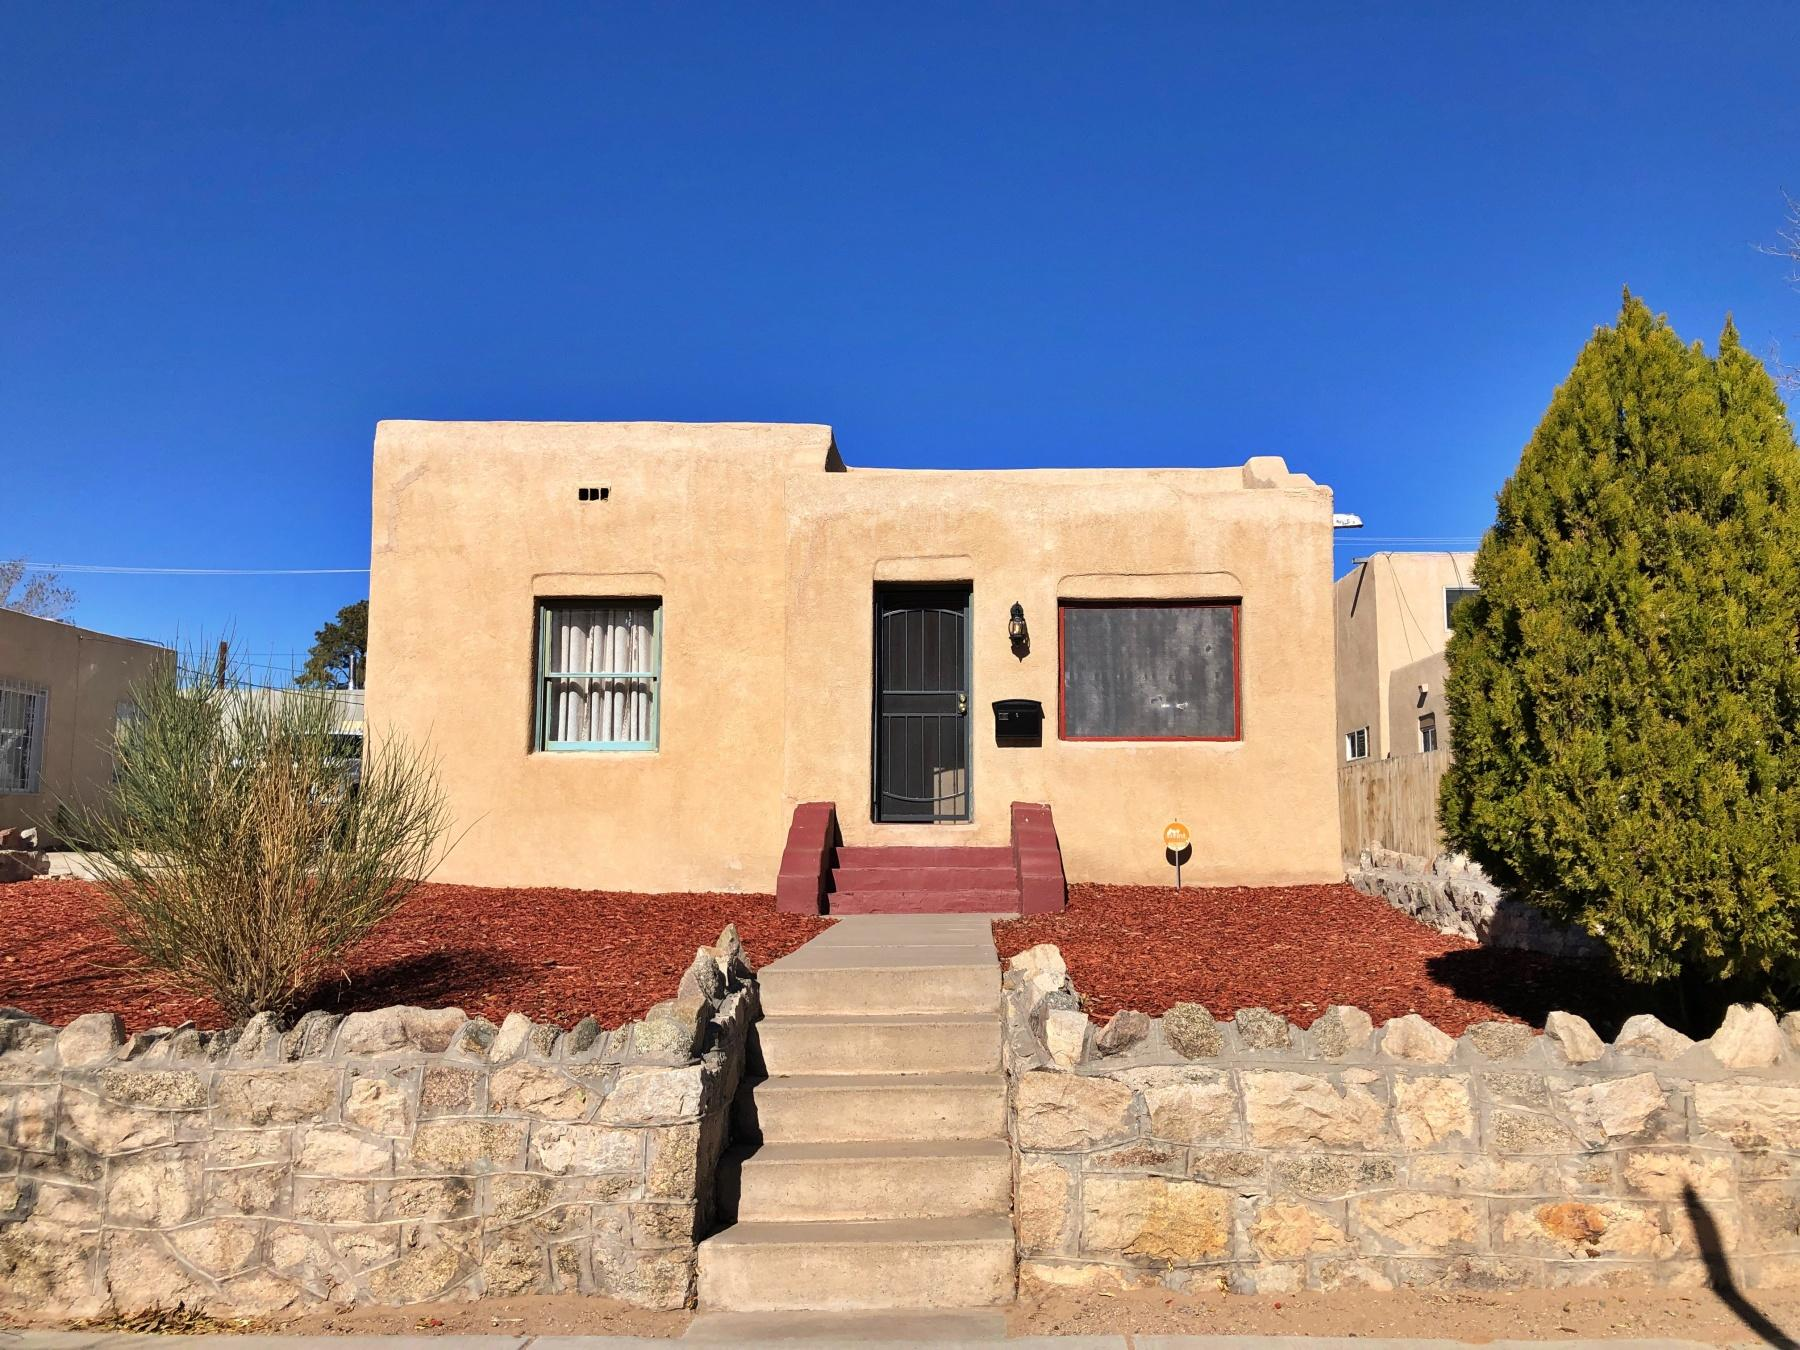 See the 3-D Virtual Tour! Sweet 2-bedroom light & bright adobe-built home in Silver Hills, an historic neighborhood sandwiched between UNM & CNM--easy walk/roll to both. Good to know: nicely updated plumbing & electric, new kitchen cabinets with 'wave-drop' backsplash, stainless appliances & great breakfast nook. Plus, updated glass tile bathroom, new light fixtures throughout, original hardwood floors & a vintage pumice-stone fireplace with tiled hearth. One bedroom wall features the exposed adobe brick. Bonus: two basement rooms totalling ~200sqft of extra storage space. Plenty of off-street parking. Also the street is zoned for the addition of accessory dwelling units (ADUs), which are being built in that section of the neighborhood, potentially adding a lot more value to the property.